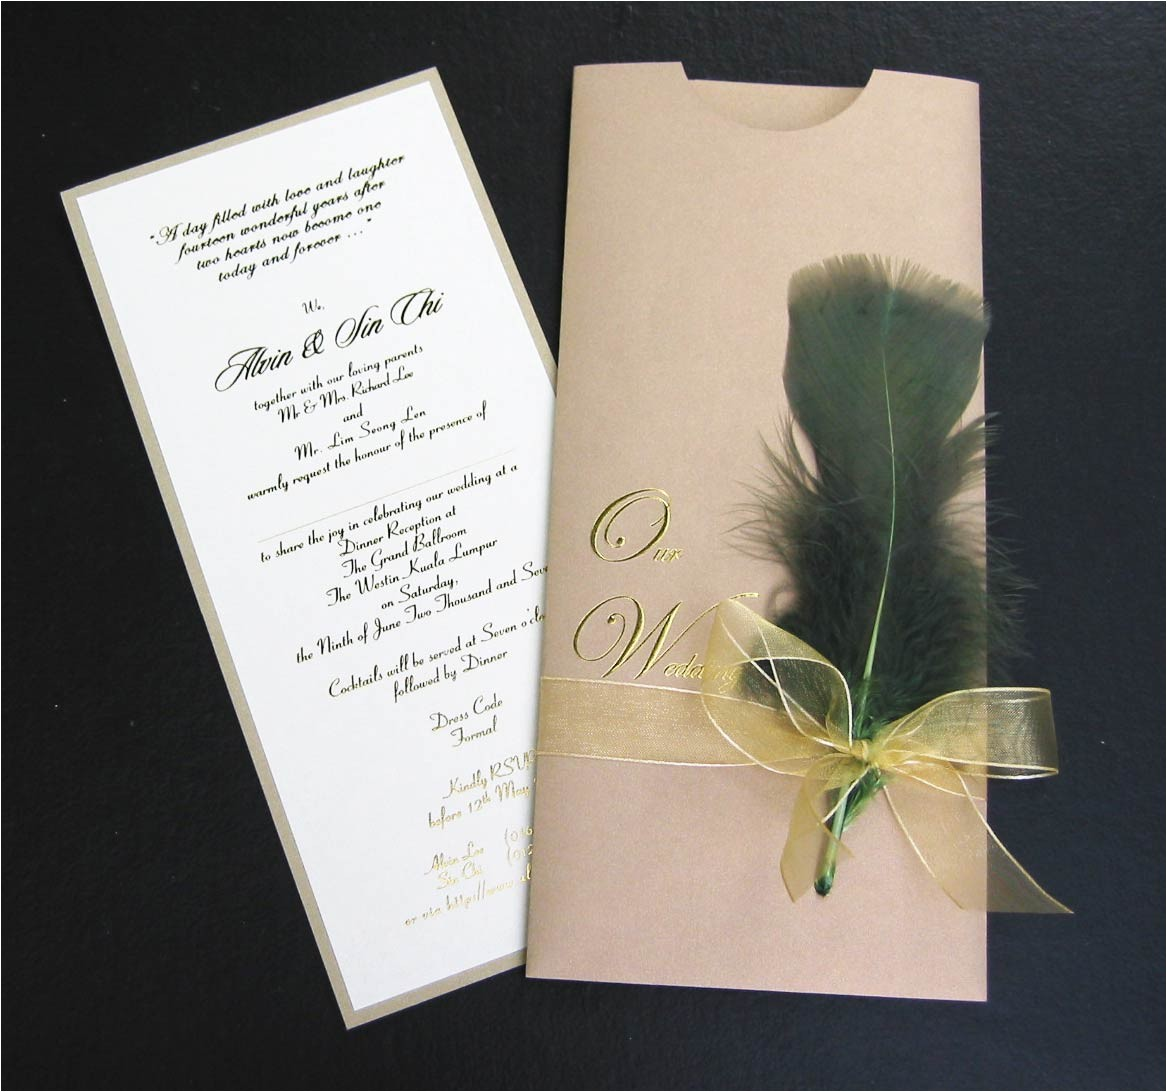 Most Expensive Wedding Invitation Most Expensive Wedding Card Invitation In the World